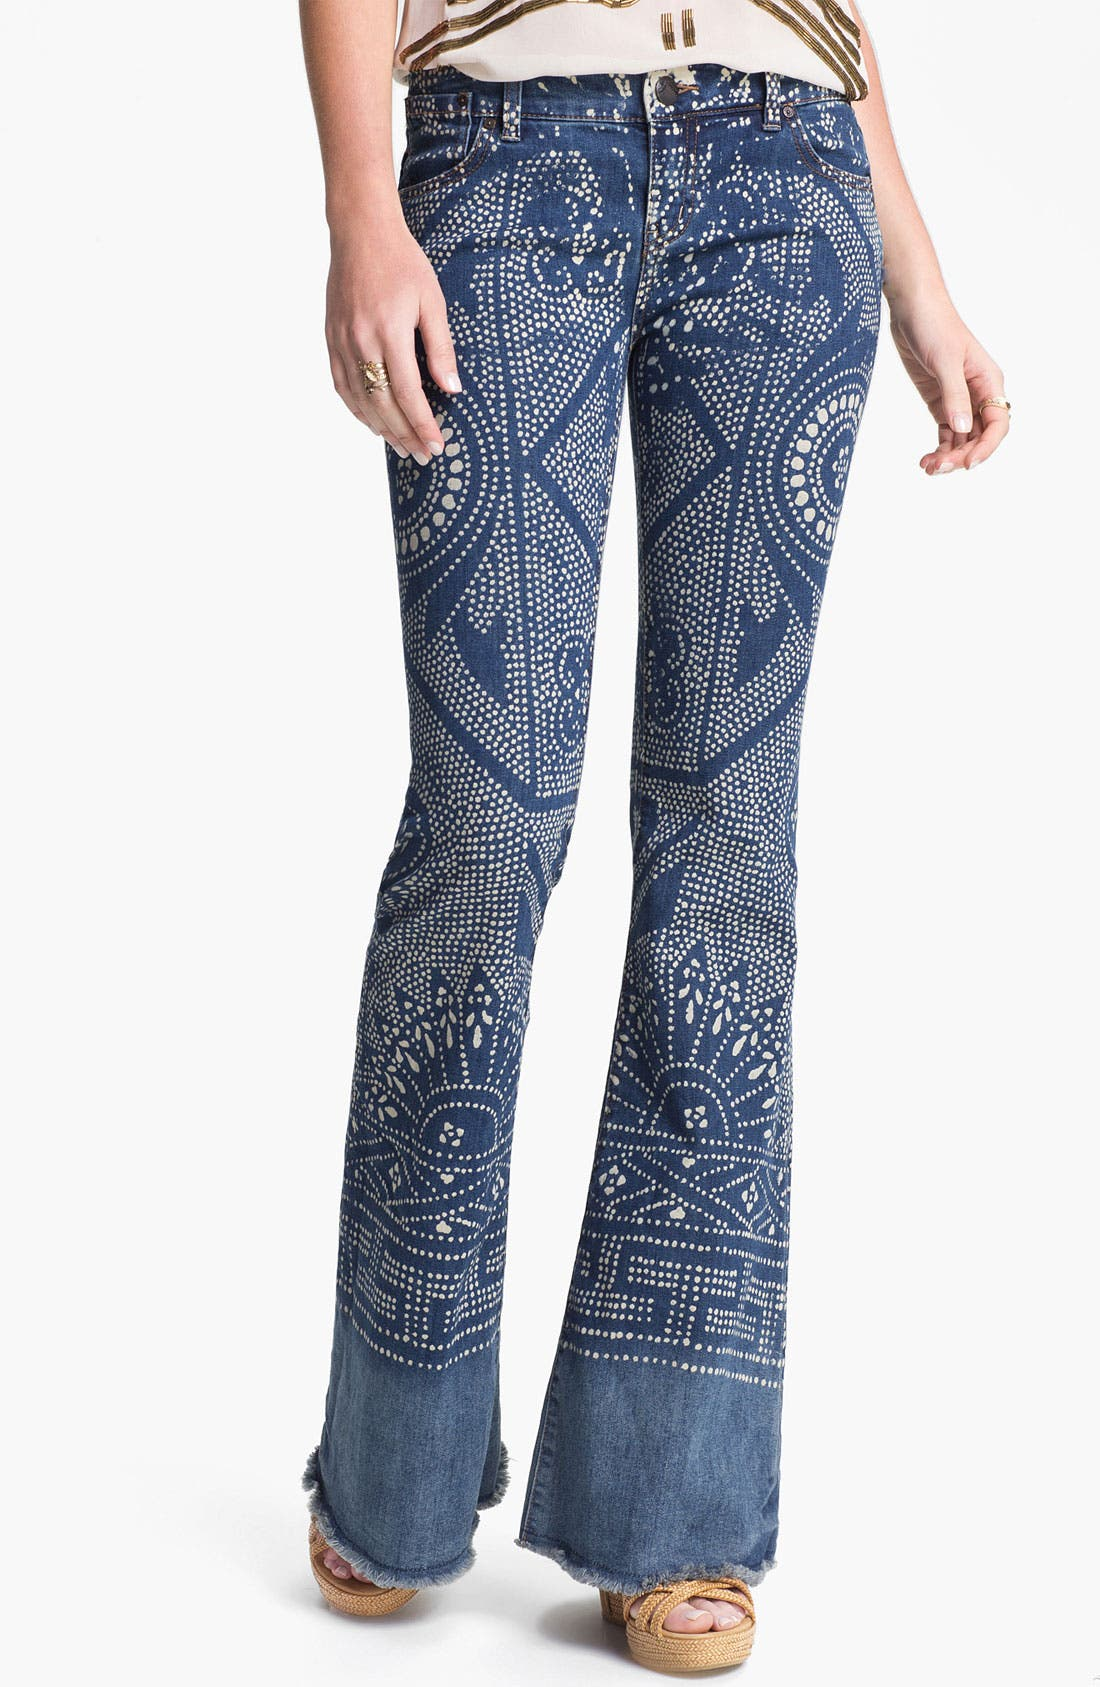 Alternate Image 1 Selected - Free People 'Bali' Print Flare Leg Jeans (Malaya)